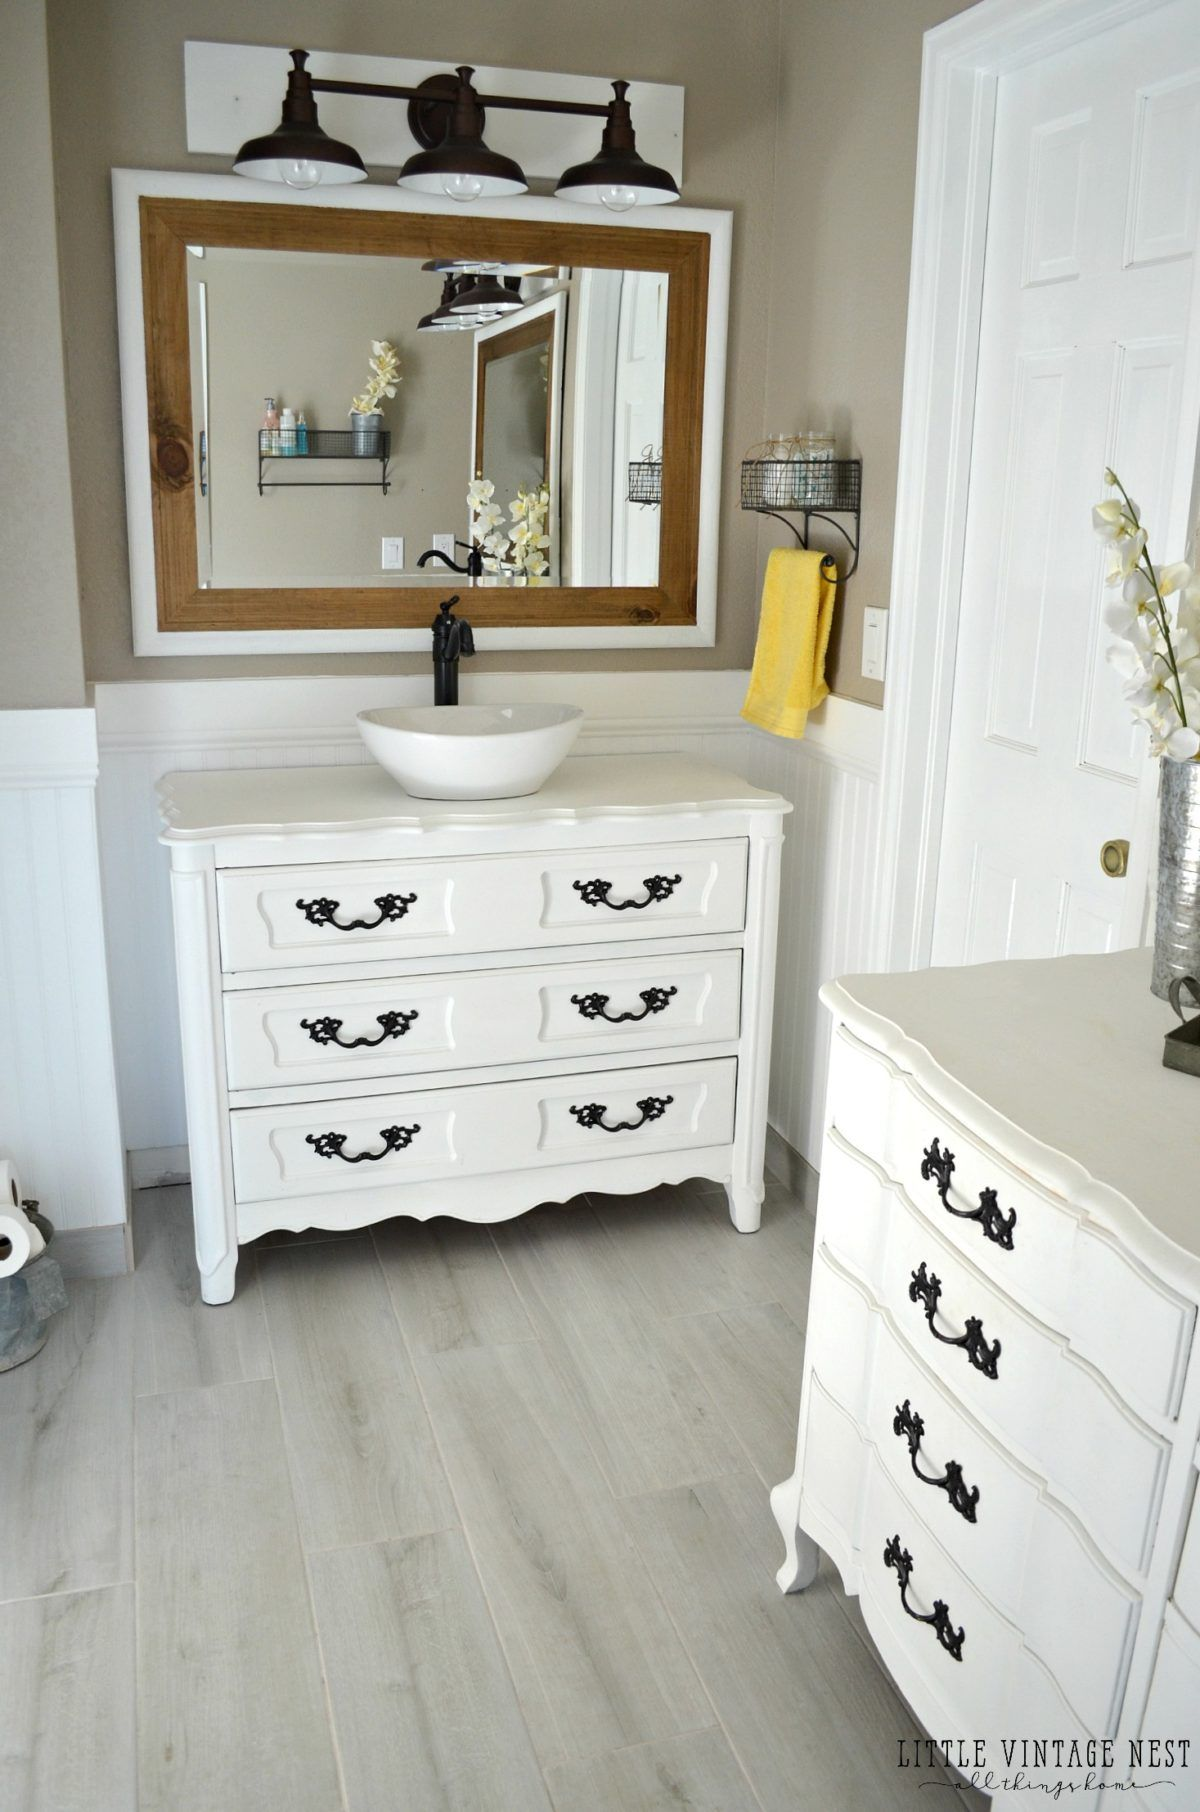 Step By Step Tutorial To Turn An Old Dresser Into Bathroom Vanity Dresser Vanity Bathroom Bathroom Vanity Redo Farmhouse Style Bathroom Vanity [ 1812 x 1200 Pixel ]